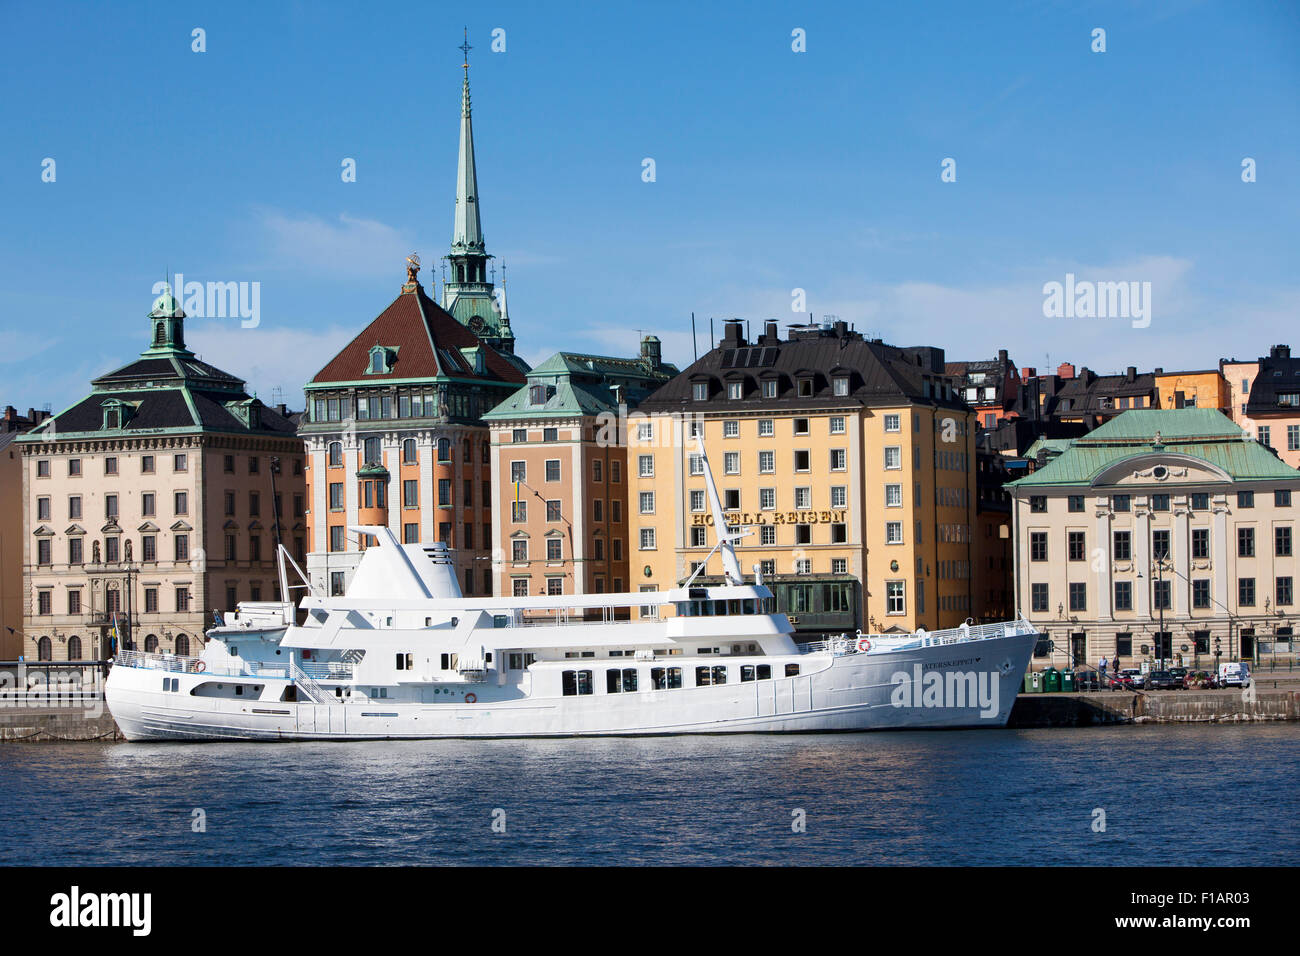 Stockholm the capital city of Sweden and most populous city in the Nordic region - Stock Image